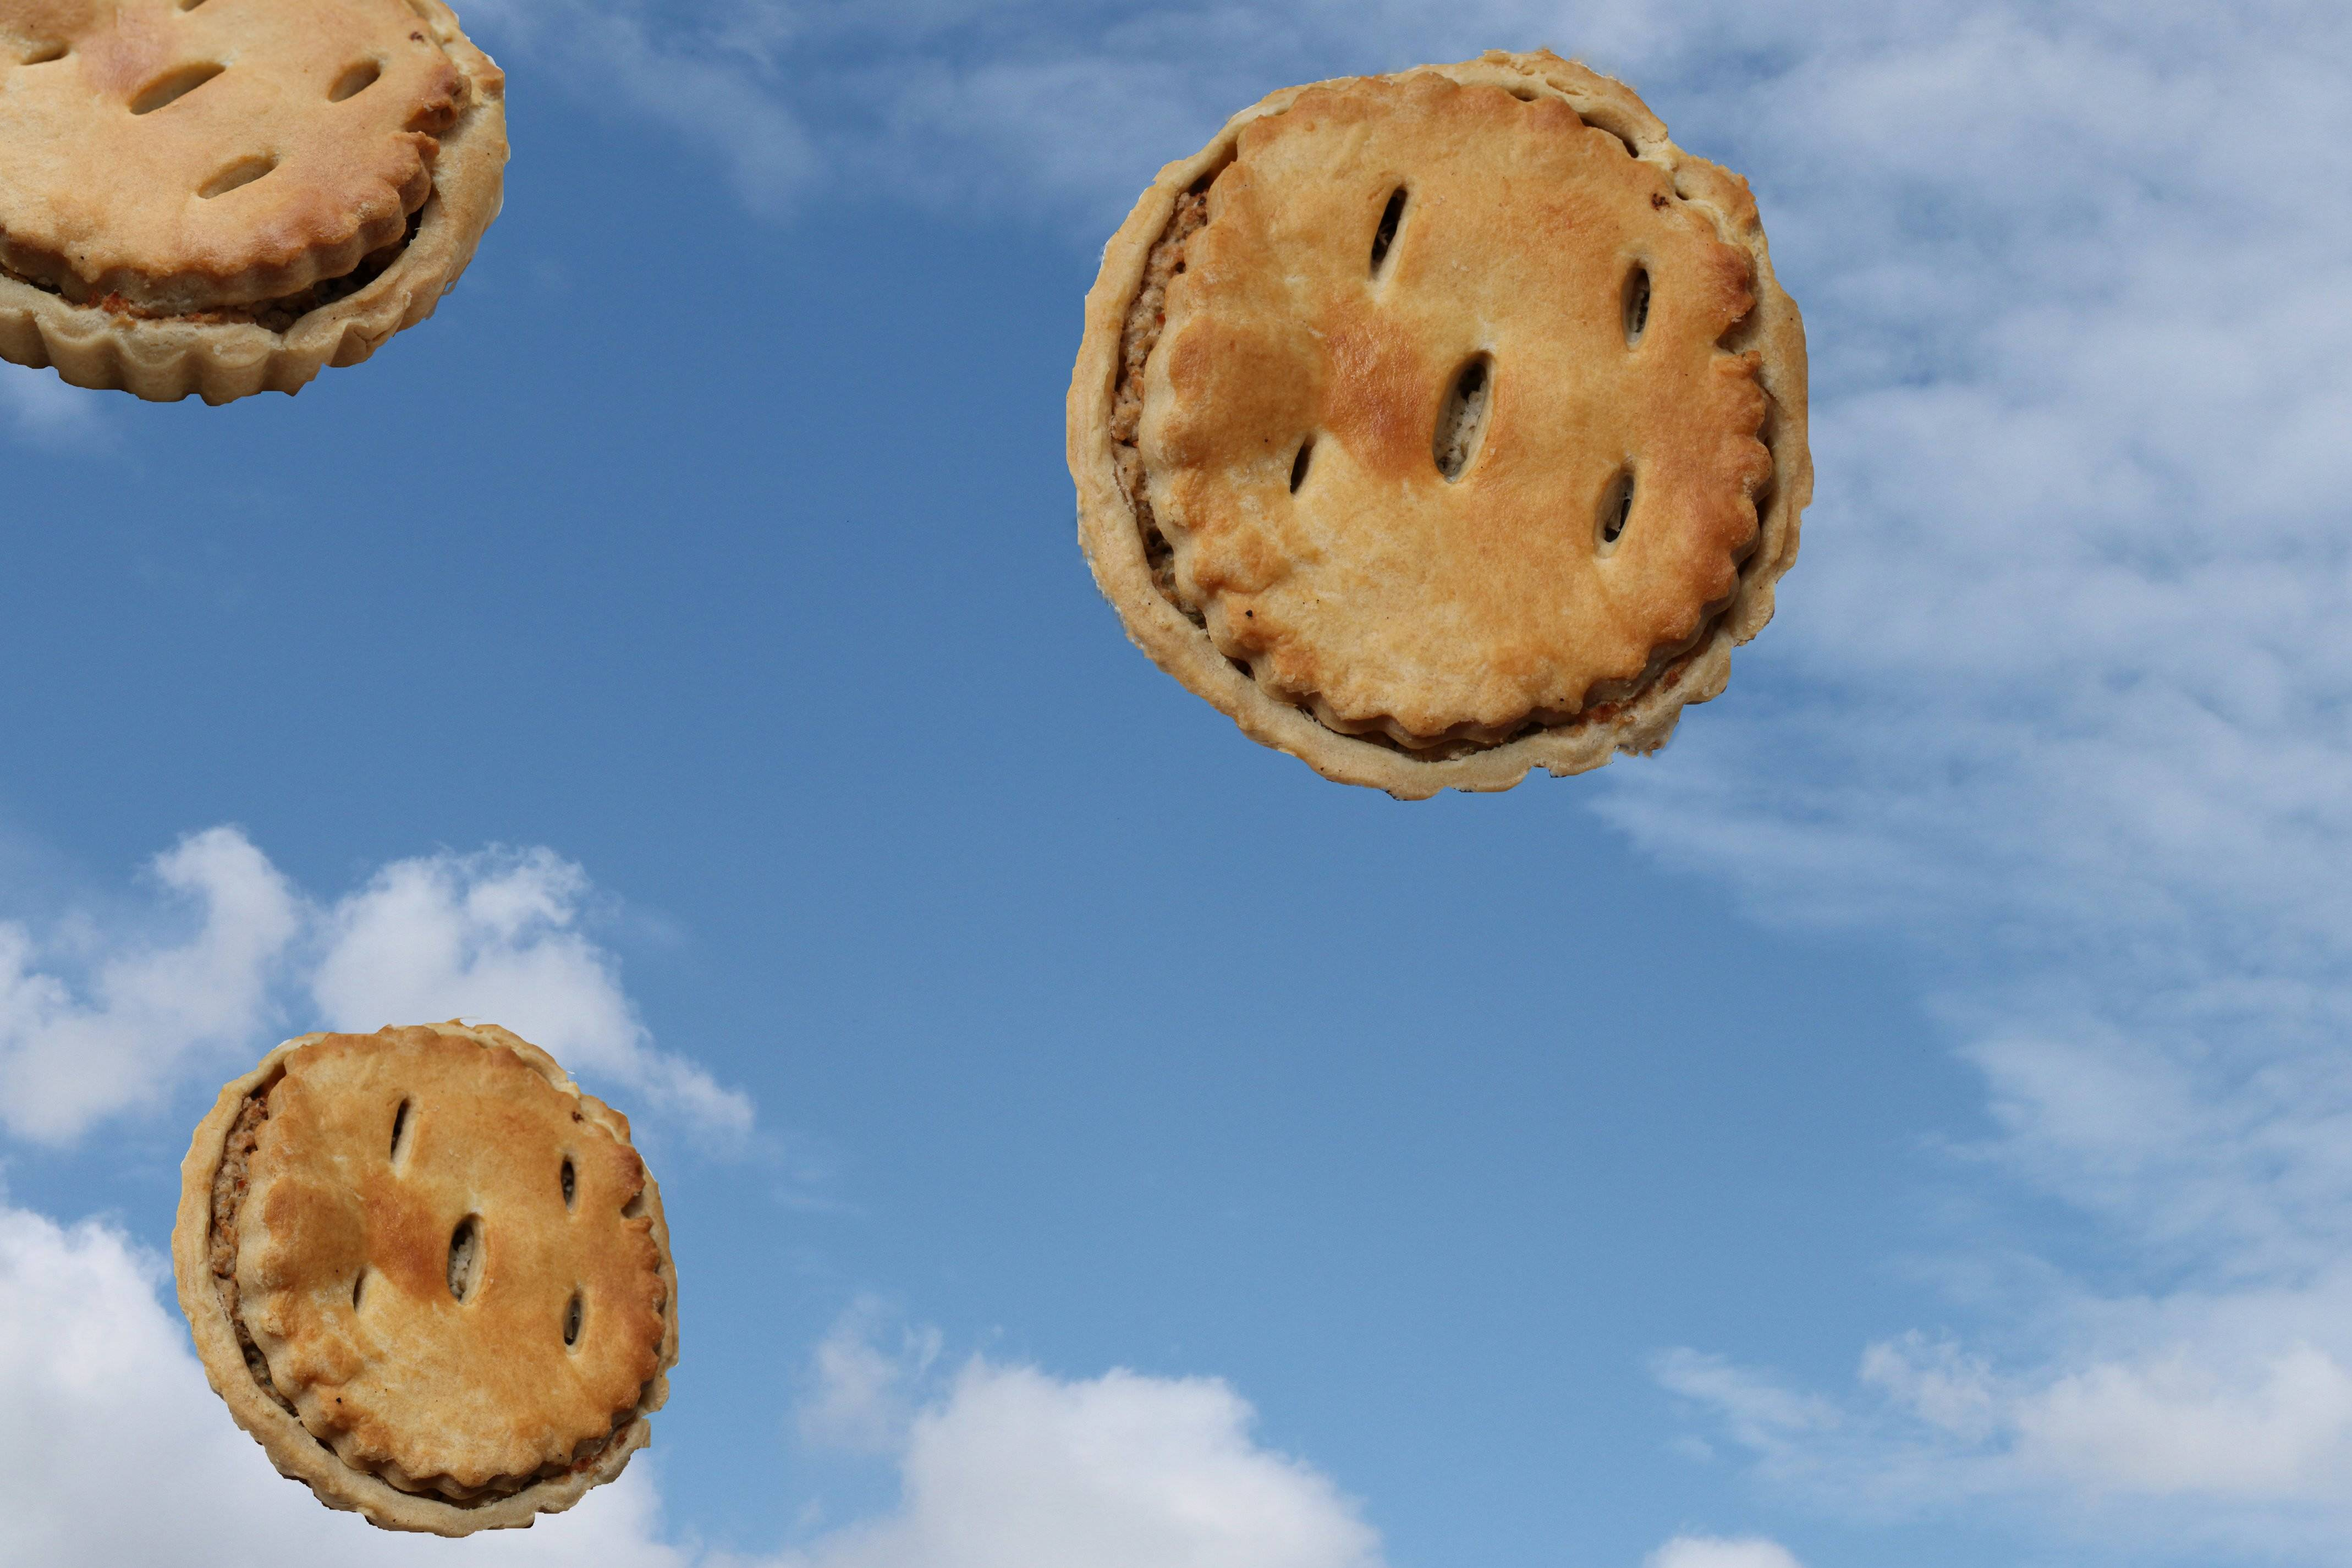 pie in the sky - AOL Image Search results